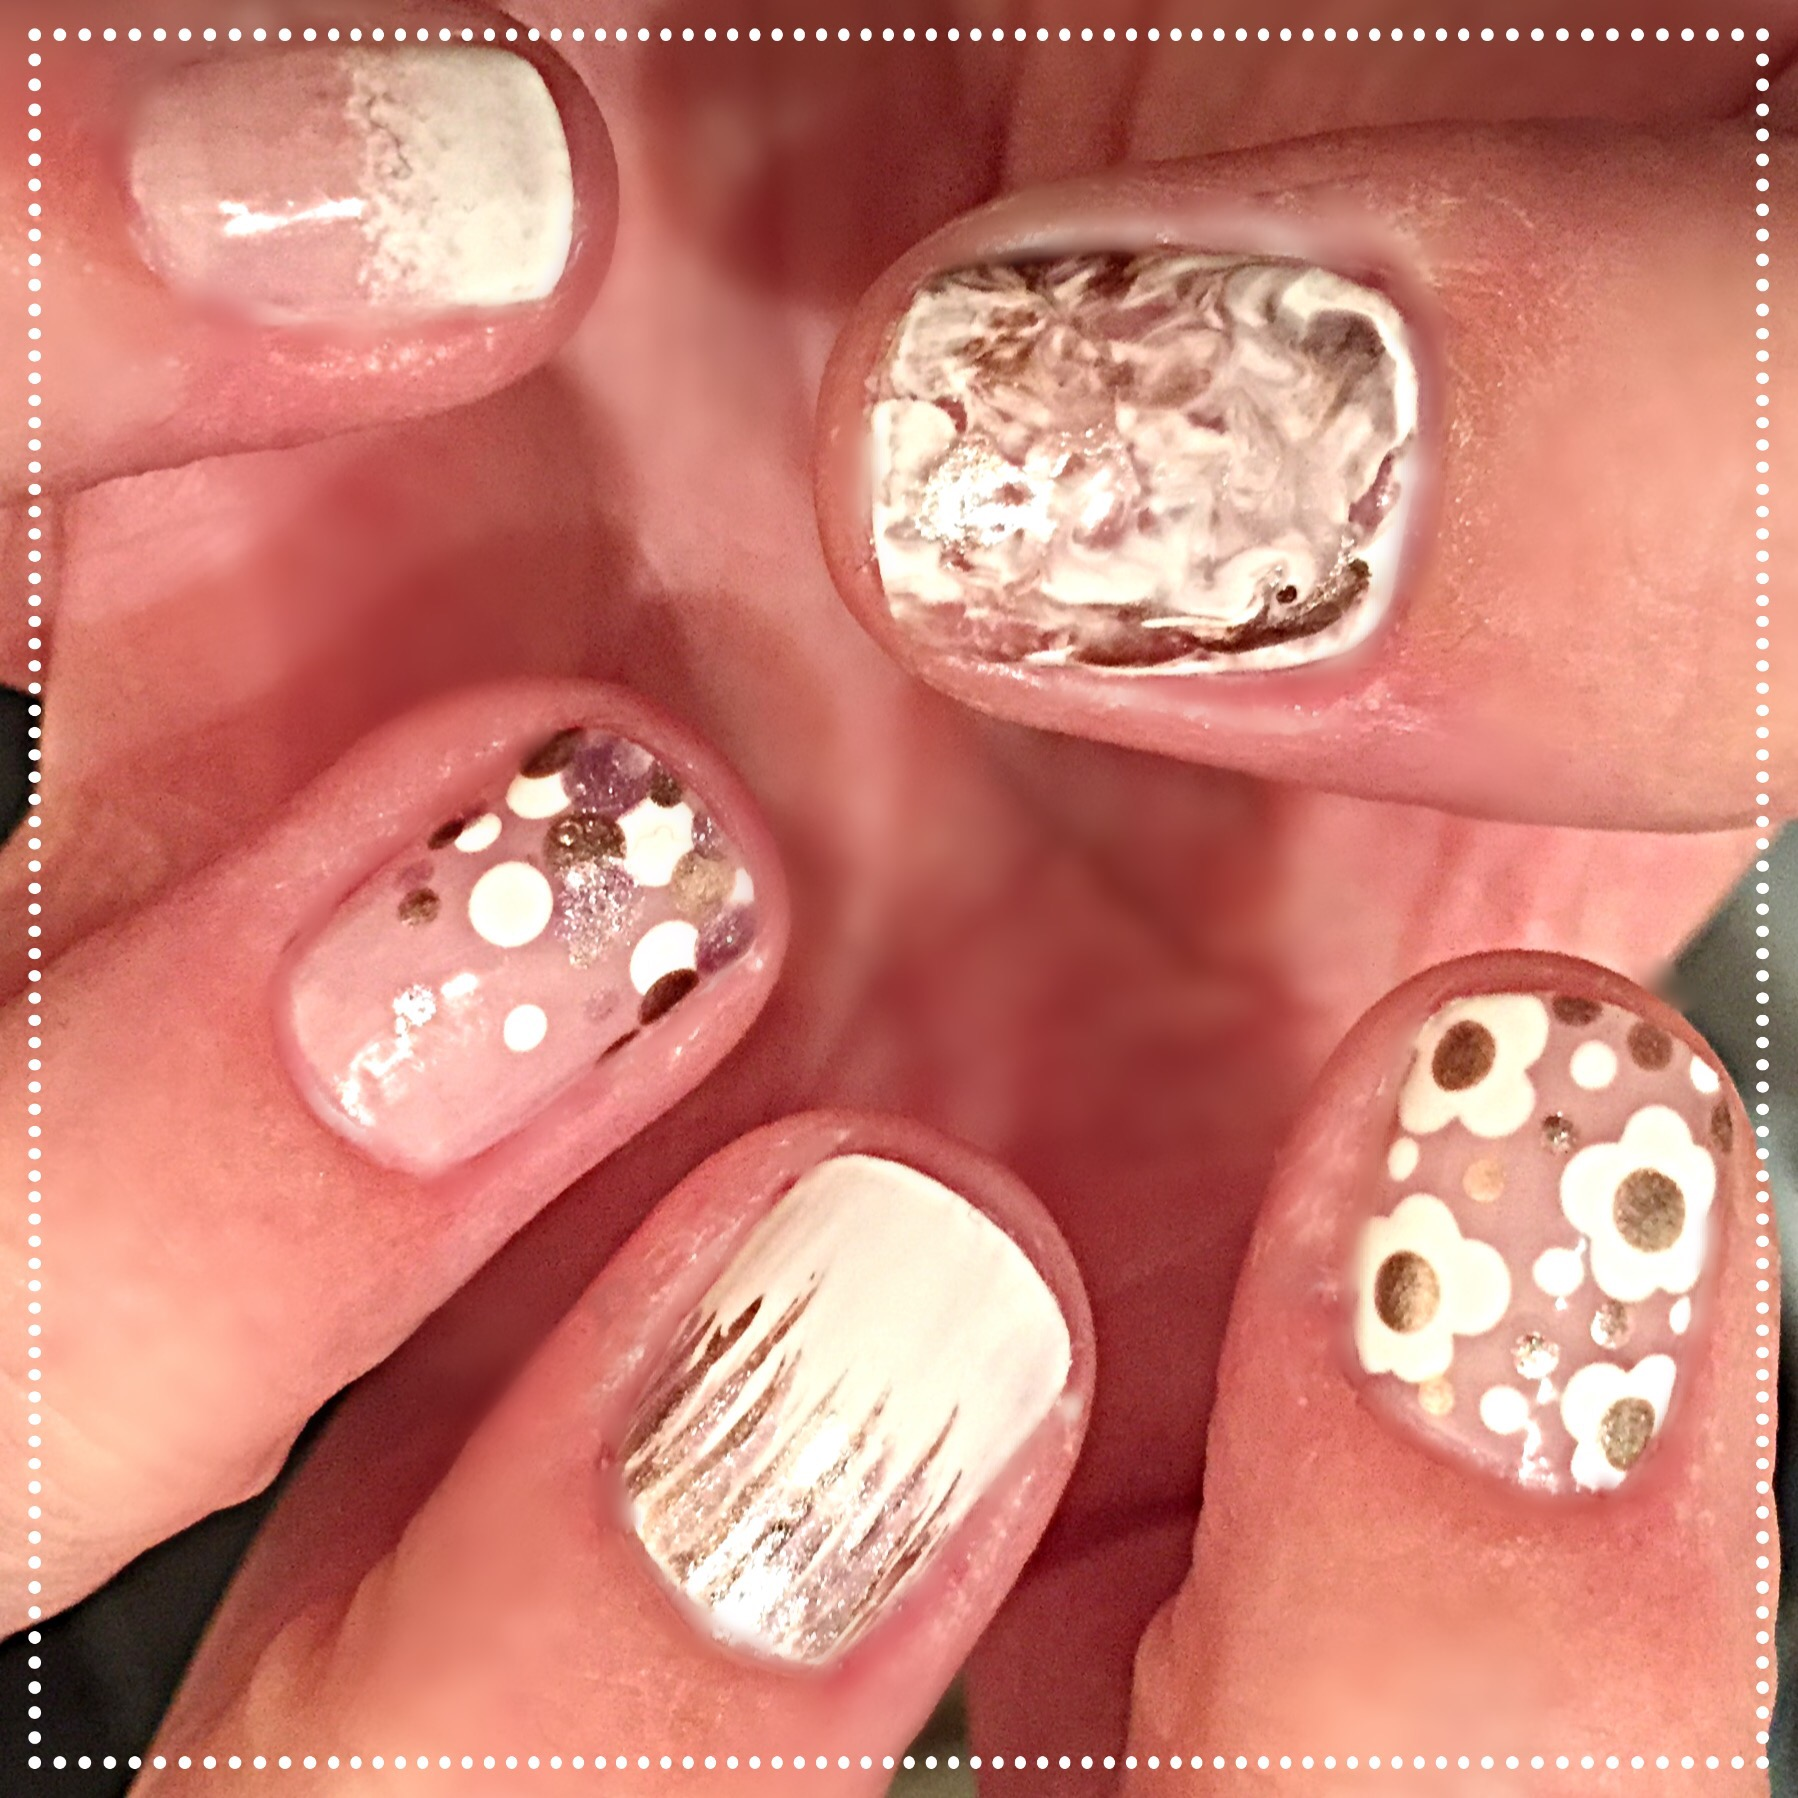 5 in 1 easy wedding nails beginnersnailarts blog the last step for each design is to clean up and add topcoat prinsesfo Gallery